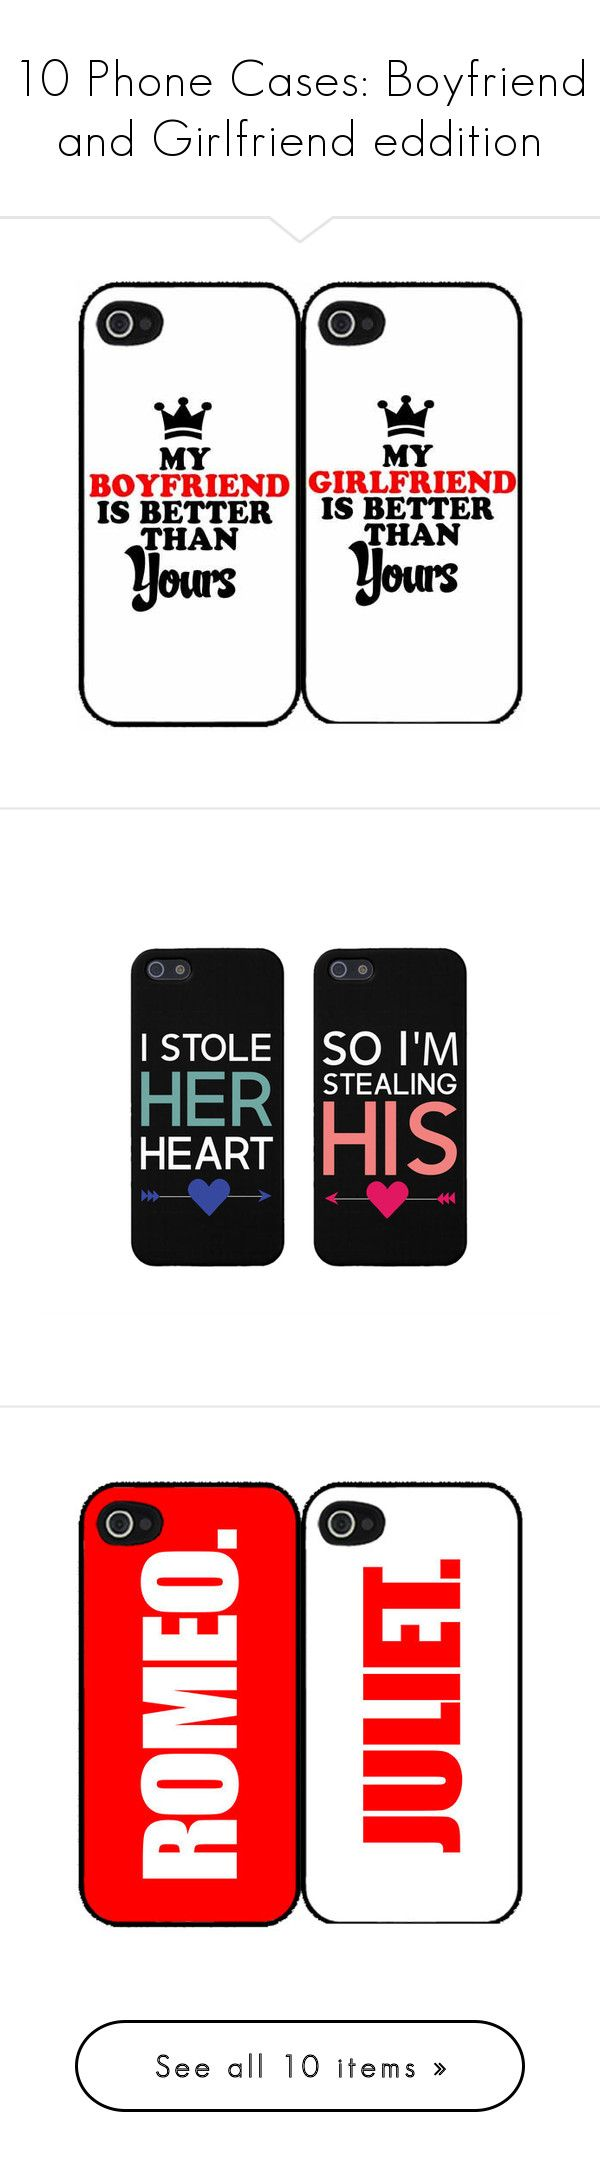 """10 Phone Cases: Boyfriend and Girlfriend eddition"" by xglitzycupcakex ❤ liked on Polyvore featuring accessories, tech accessories, phone cases, phone, cases, couples, iphone cases, apple iphone case, galaxy iphone case and iphone cover case"